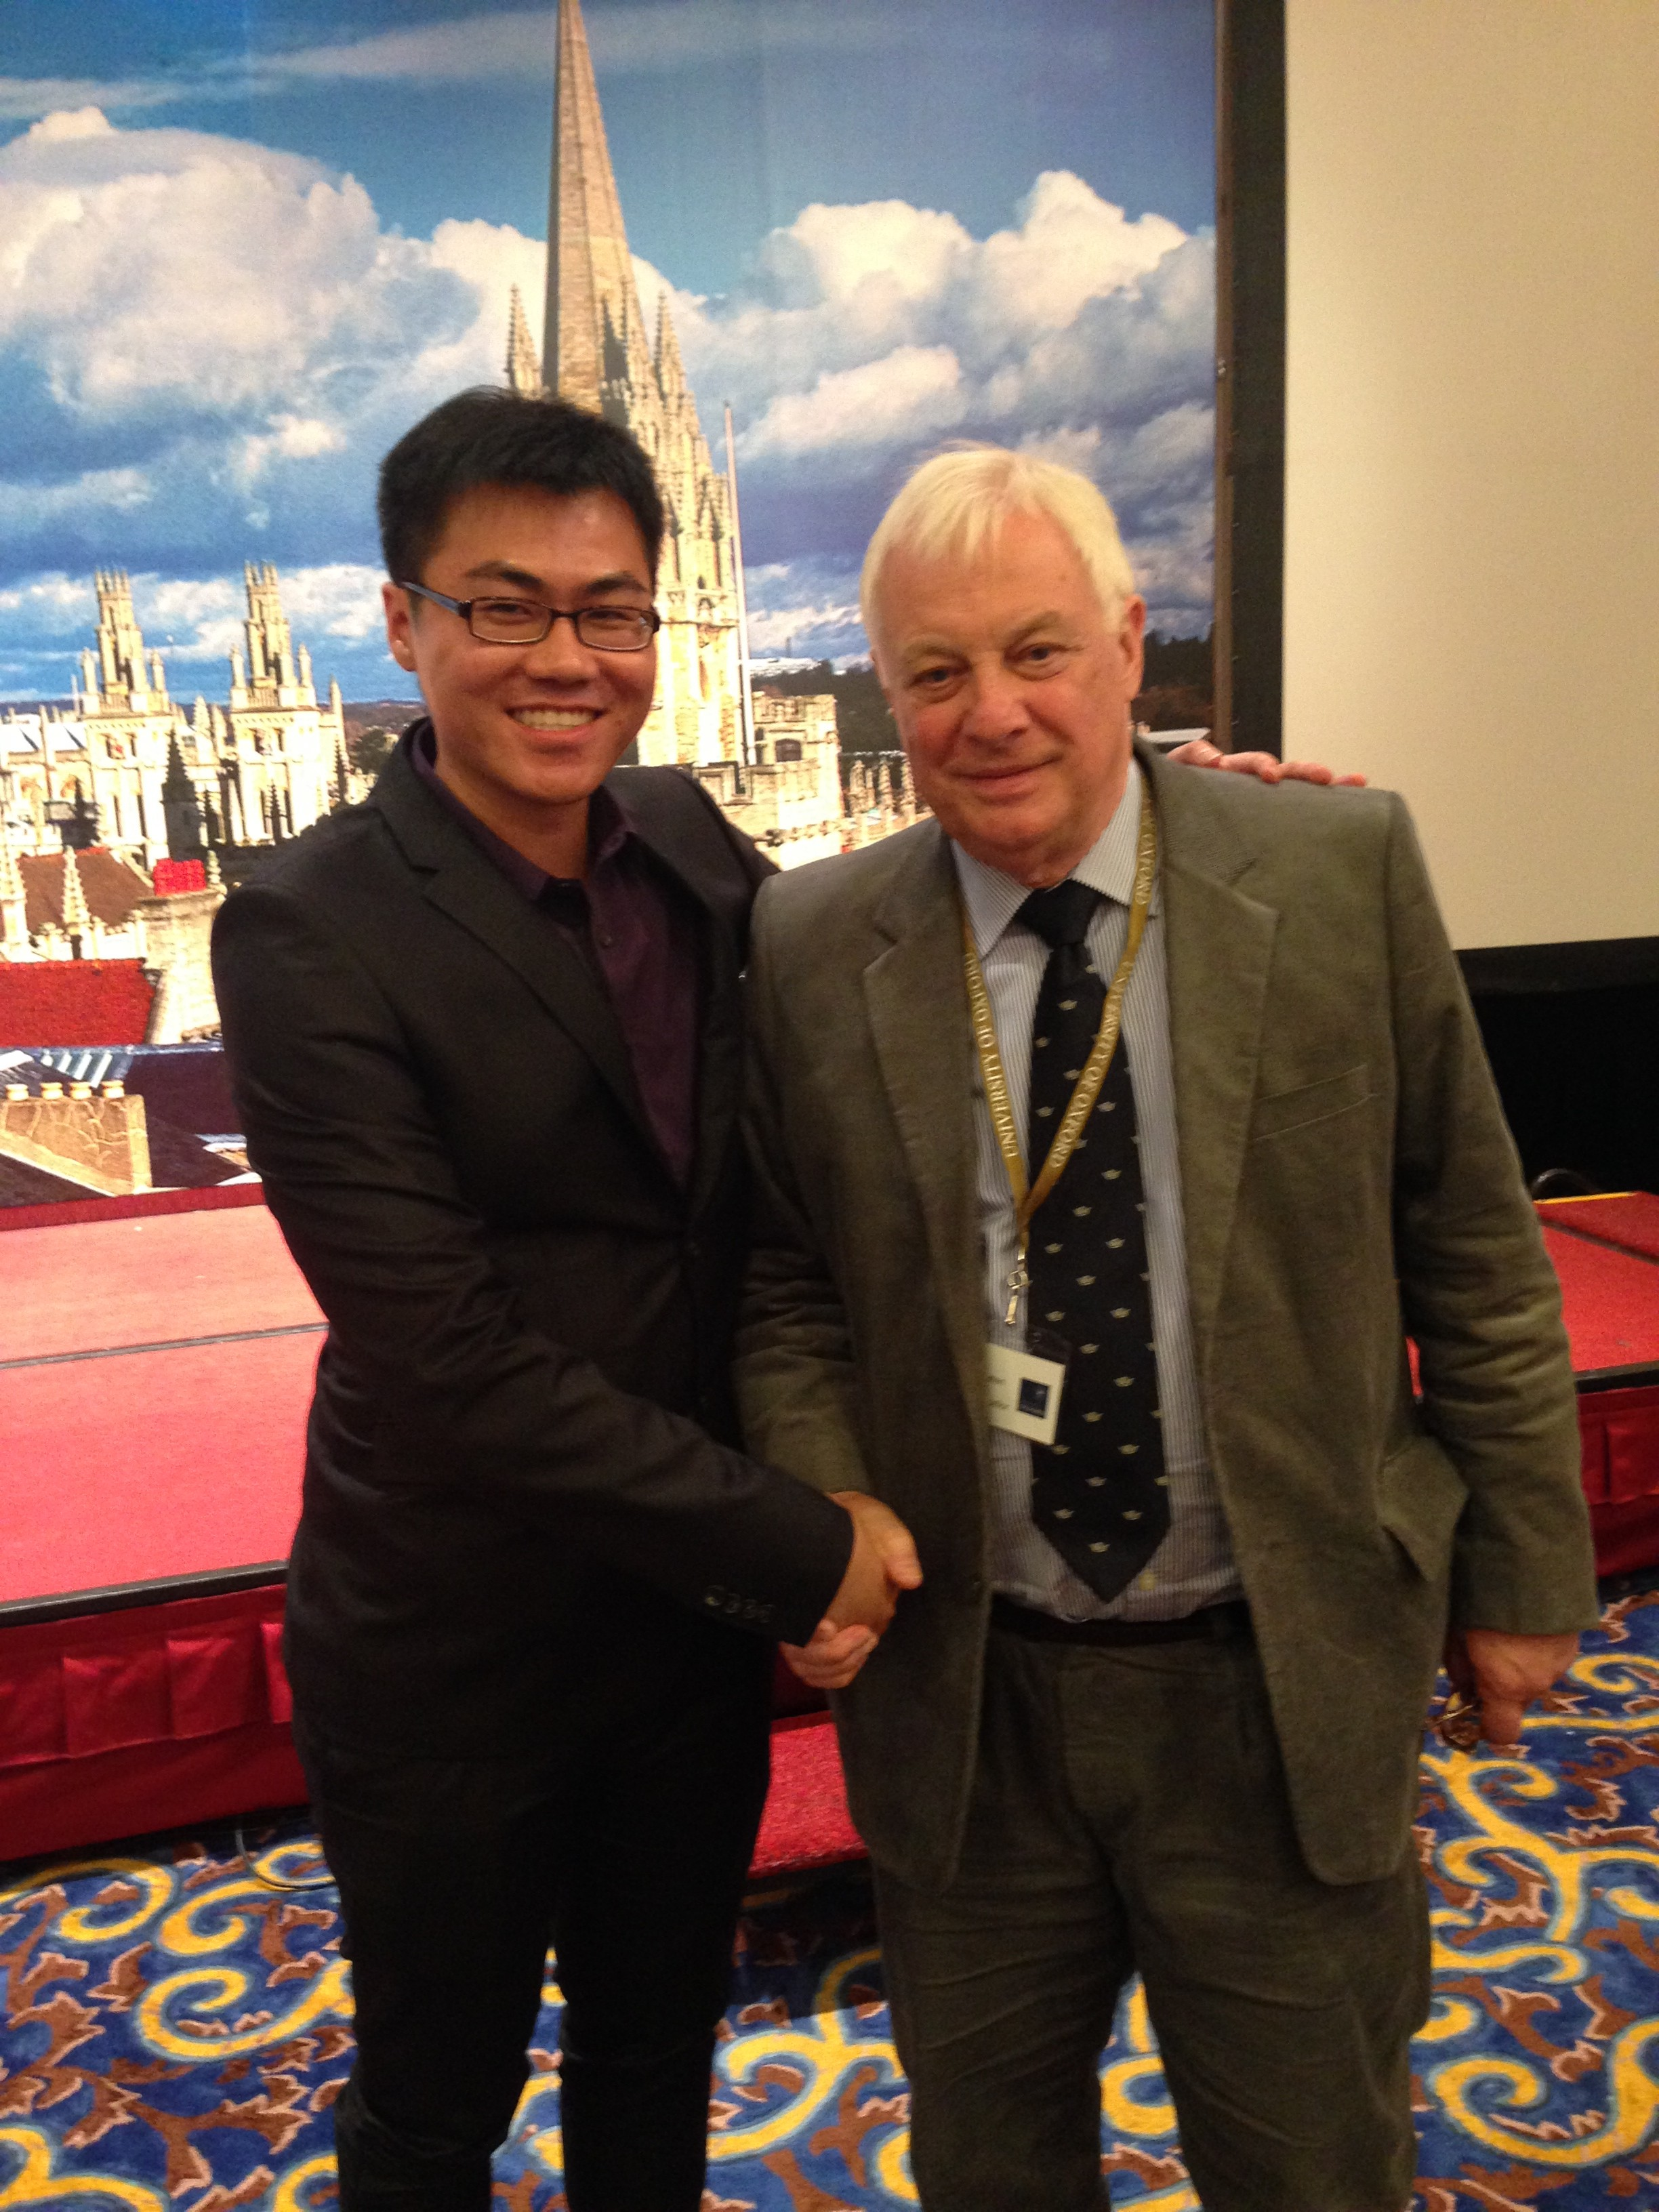 Lee Chon with Lord Patten (Chris Patten)